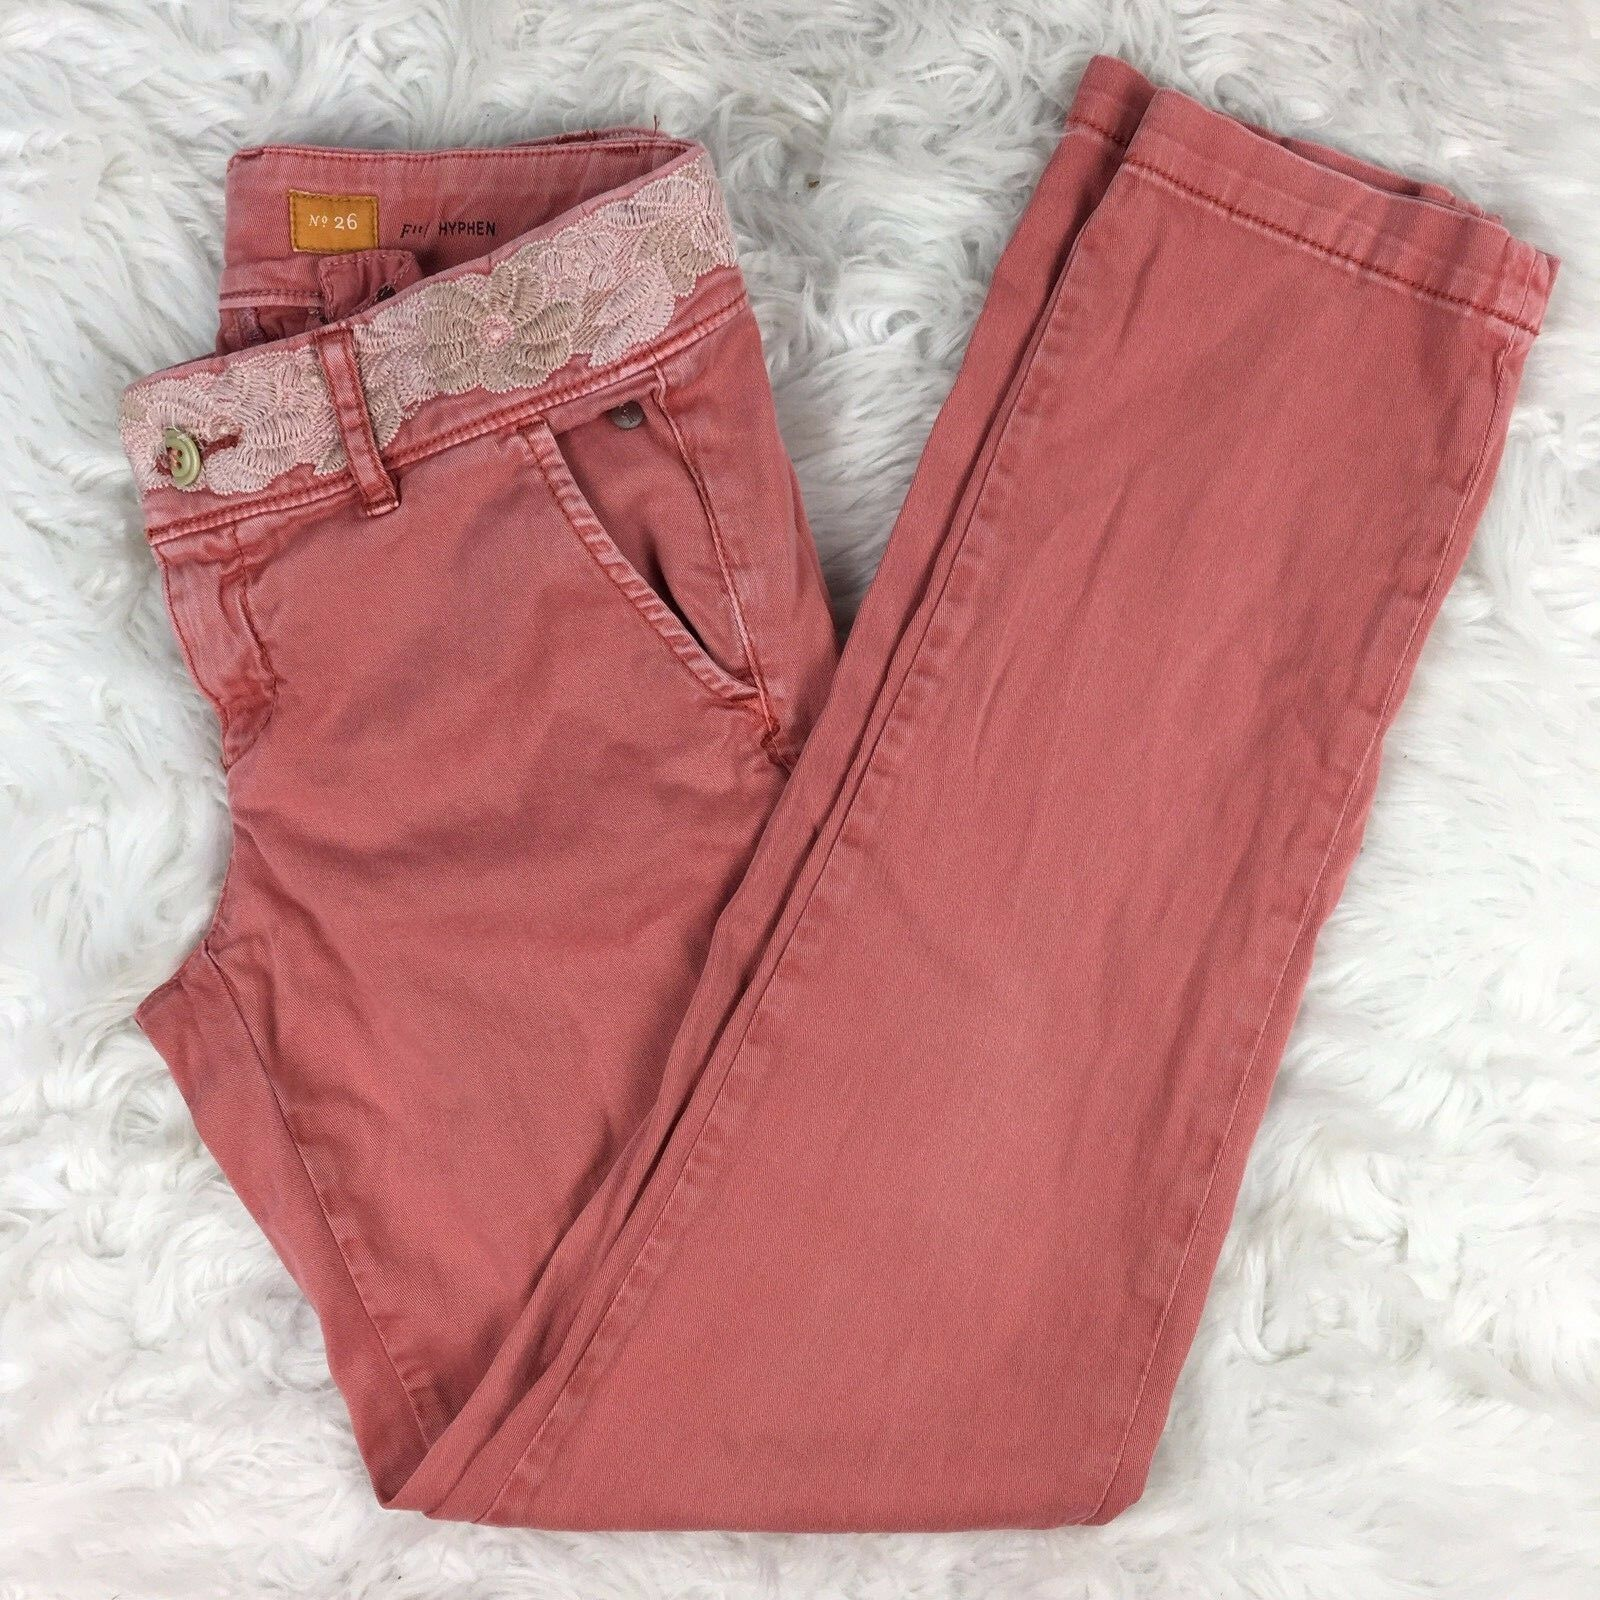 Pilcro & the Letterpress Fit Hyphen Salmon Pants Red Coral Moto Pants Size 29